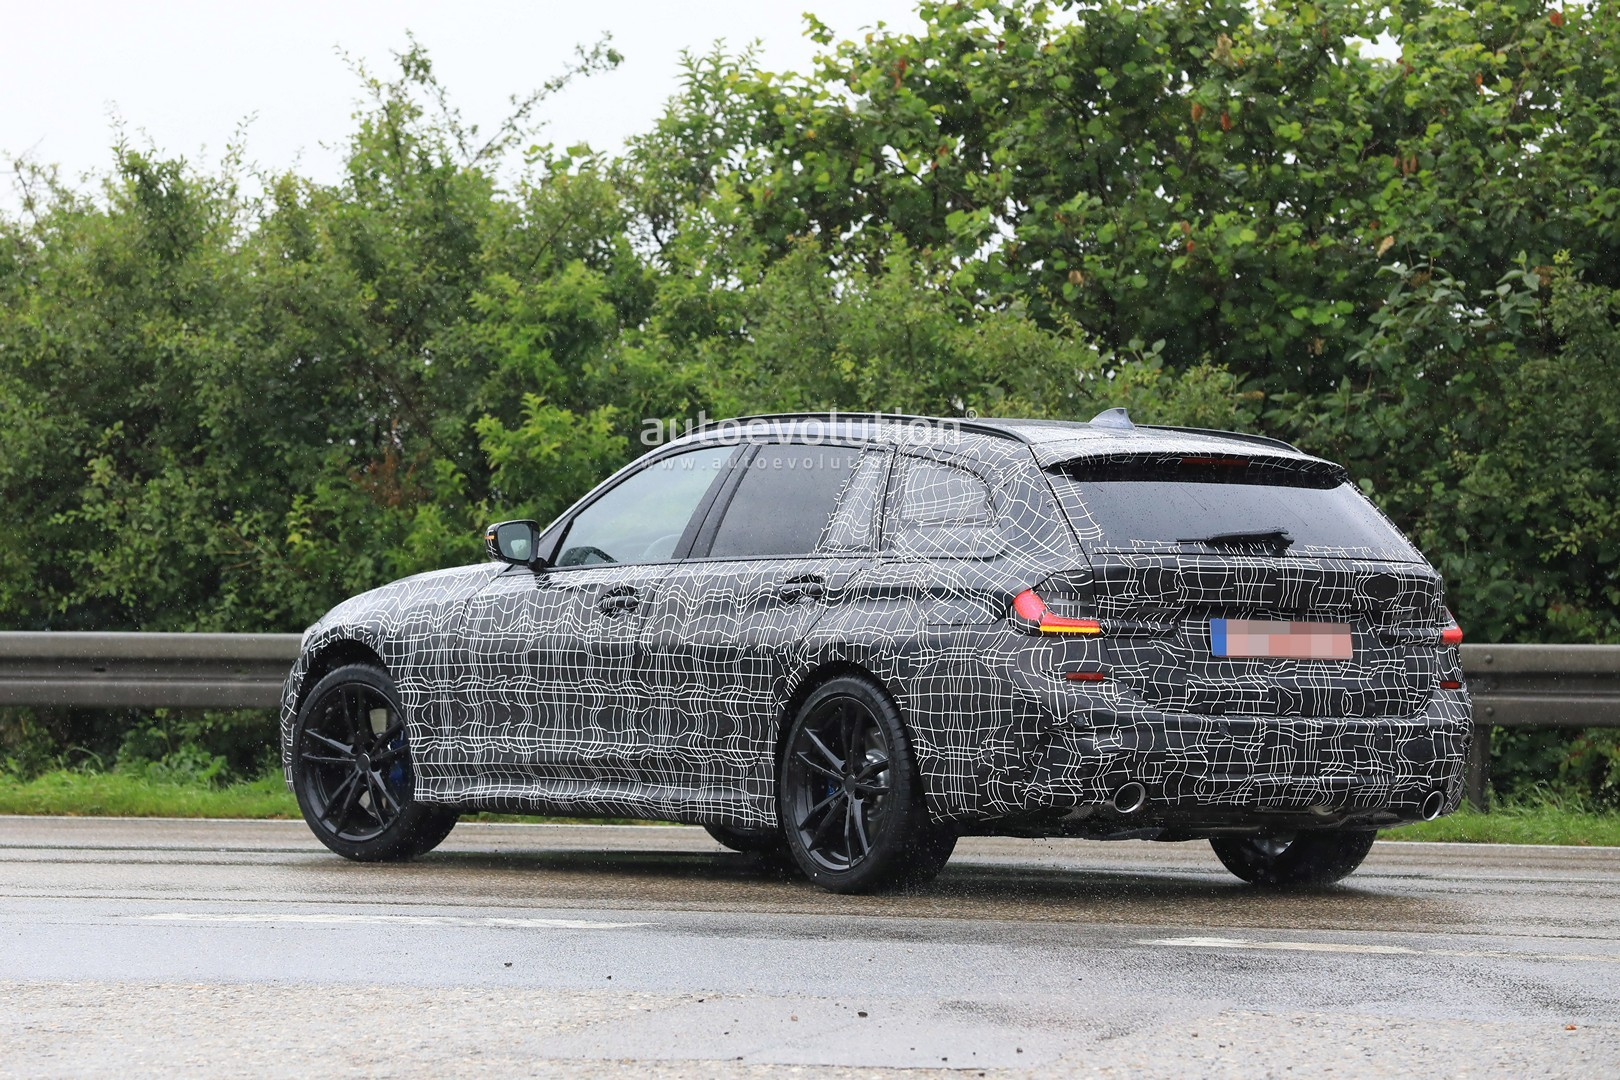 New Bmw 7 Series >> G21 BMW 3 Series Wagon Spied in Detail With M Sport Body - autoevolution